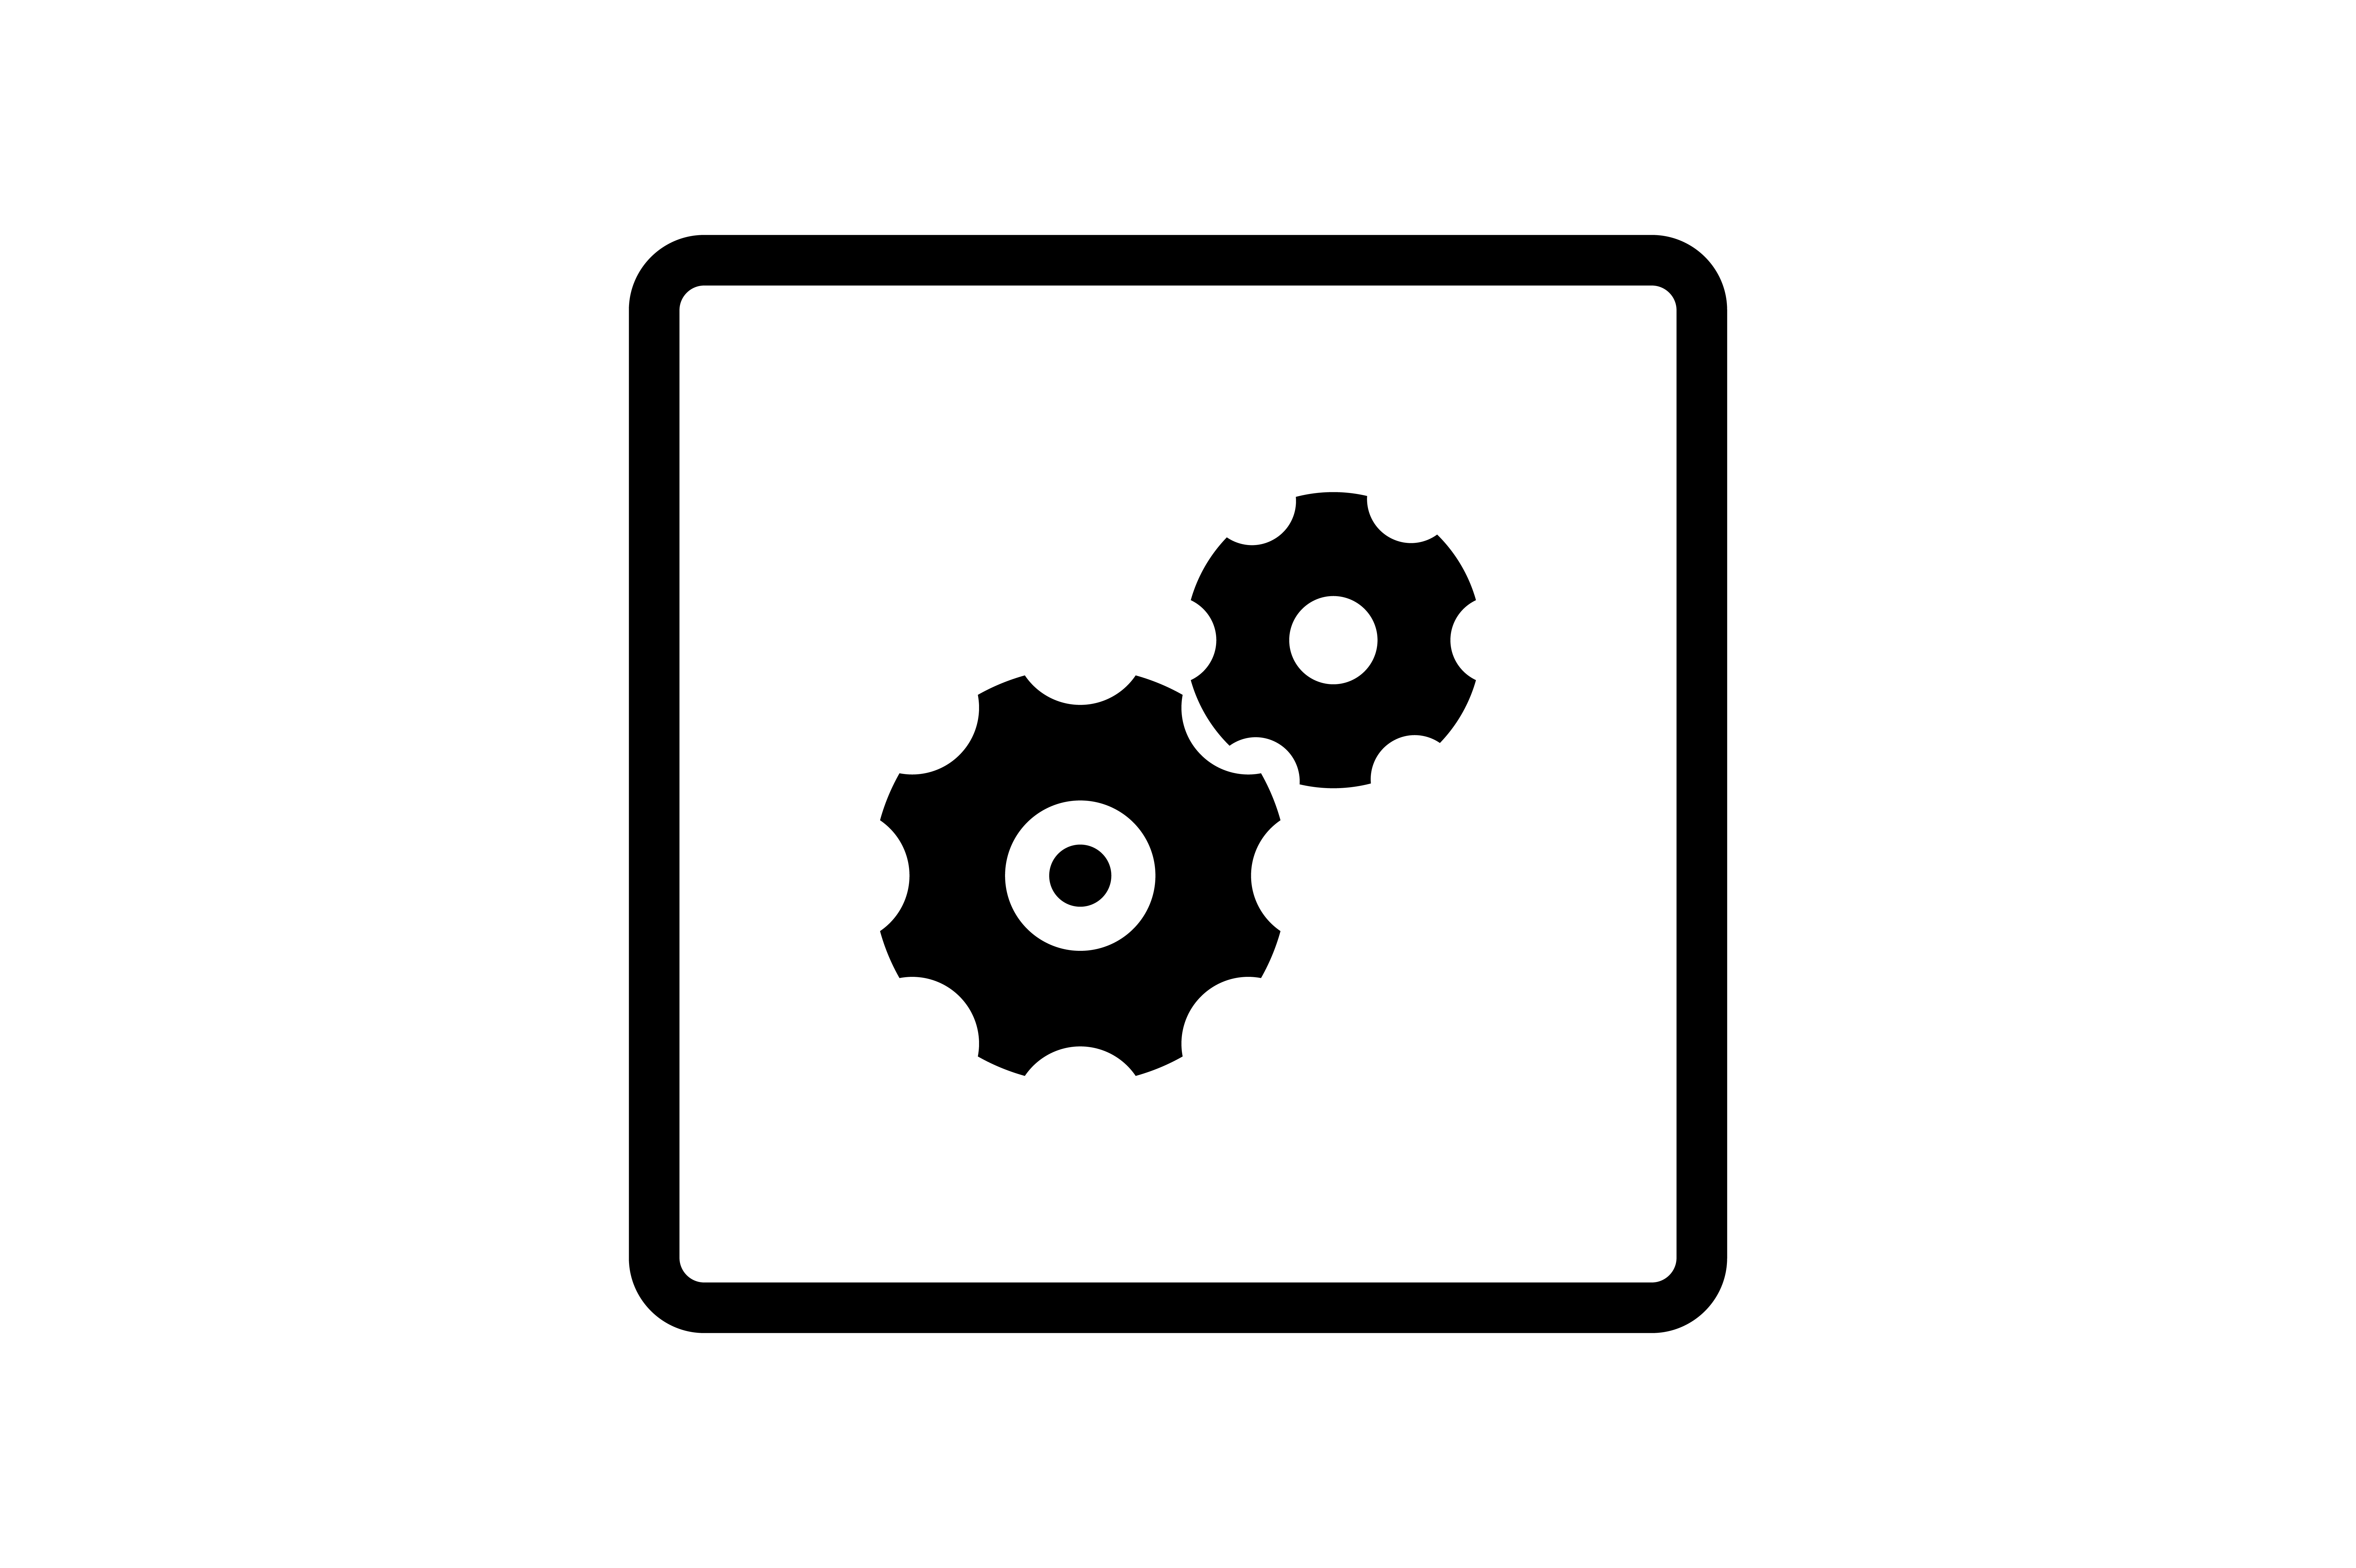 Download Free Gear Icon Graphic By Zafreeloicon Creative Fabrica for Cricut Explore, Silhouette and other cutting machines.